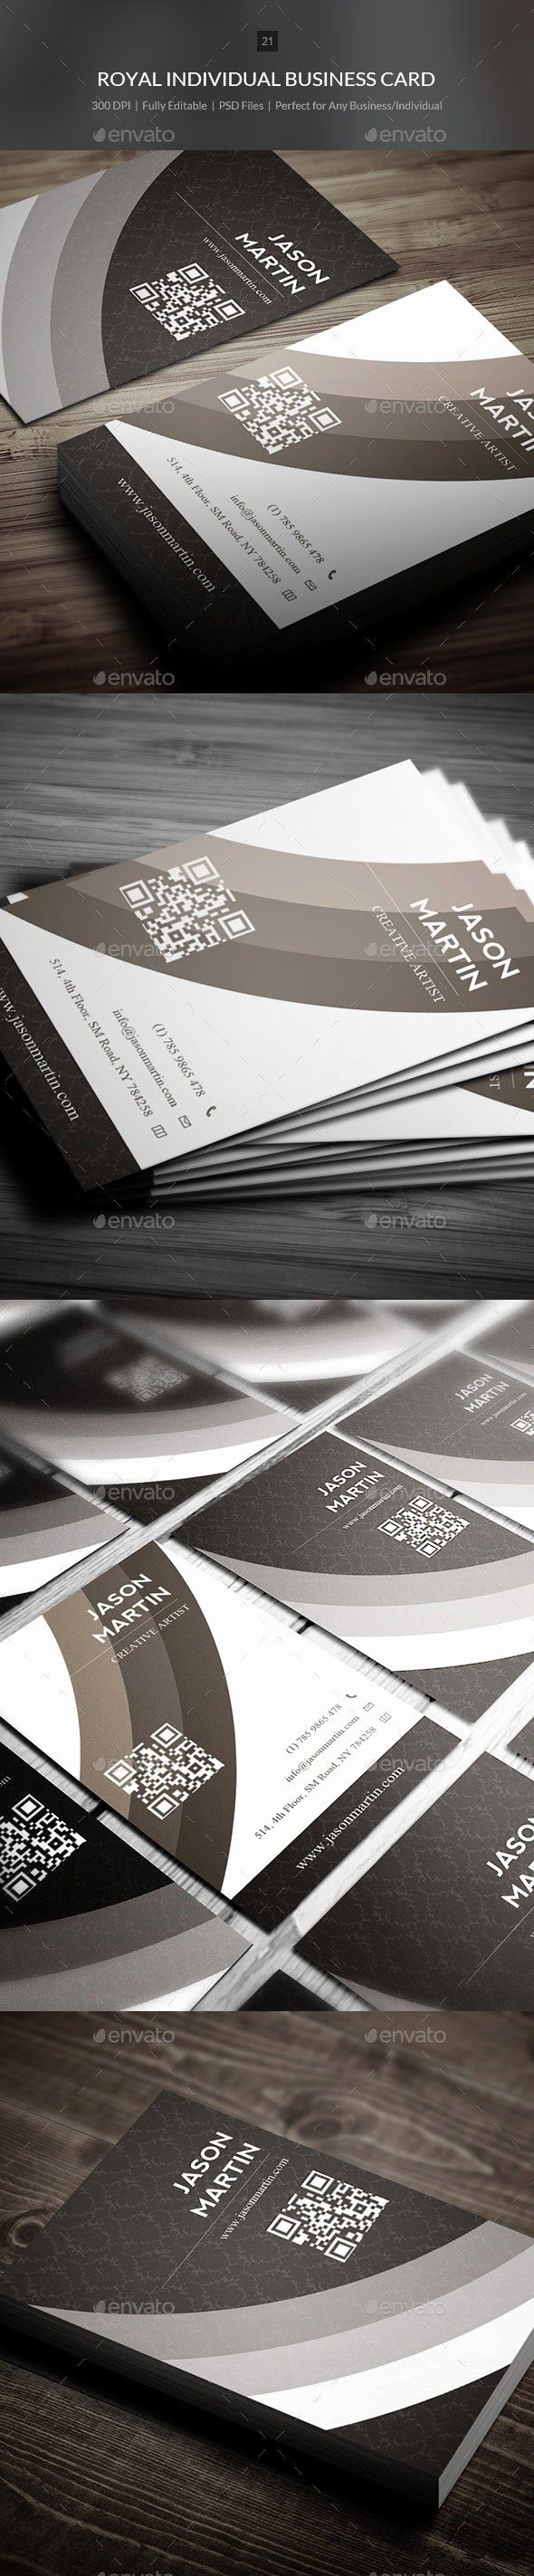 Royal Brites Business Cards Template Best Of Template for Royal Brites Business Cards 21 6 Cm X 27 9 Cm